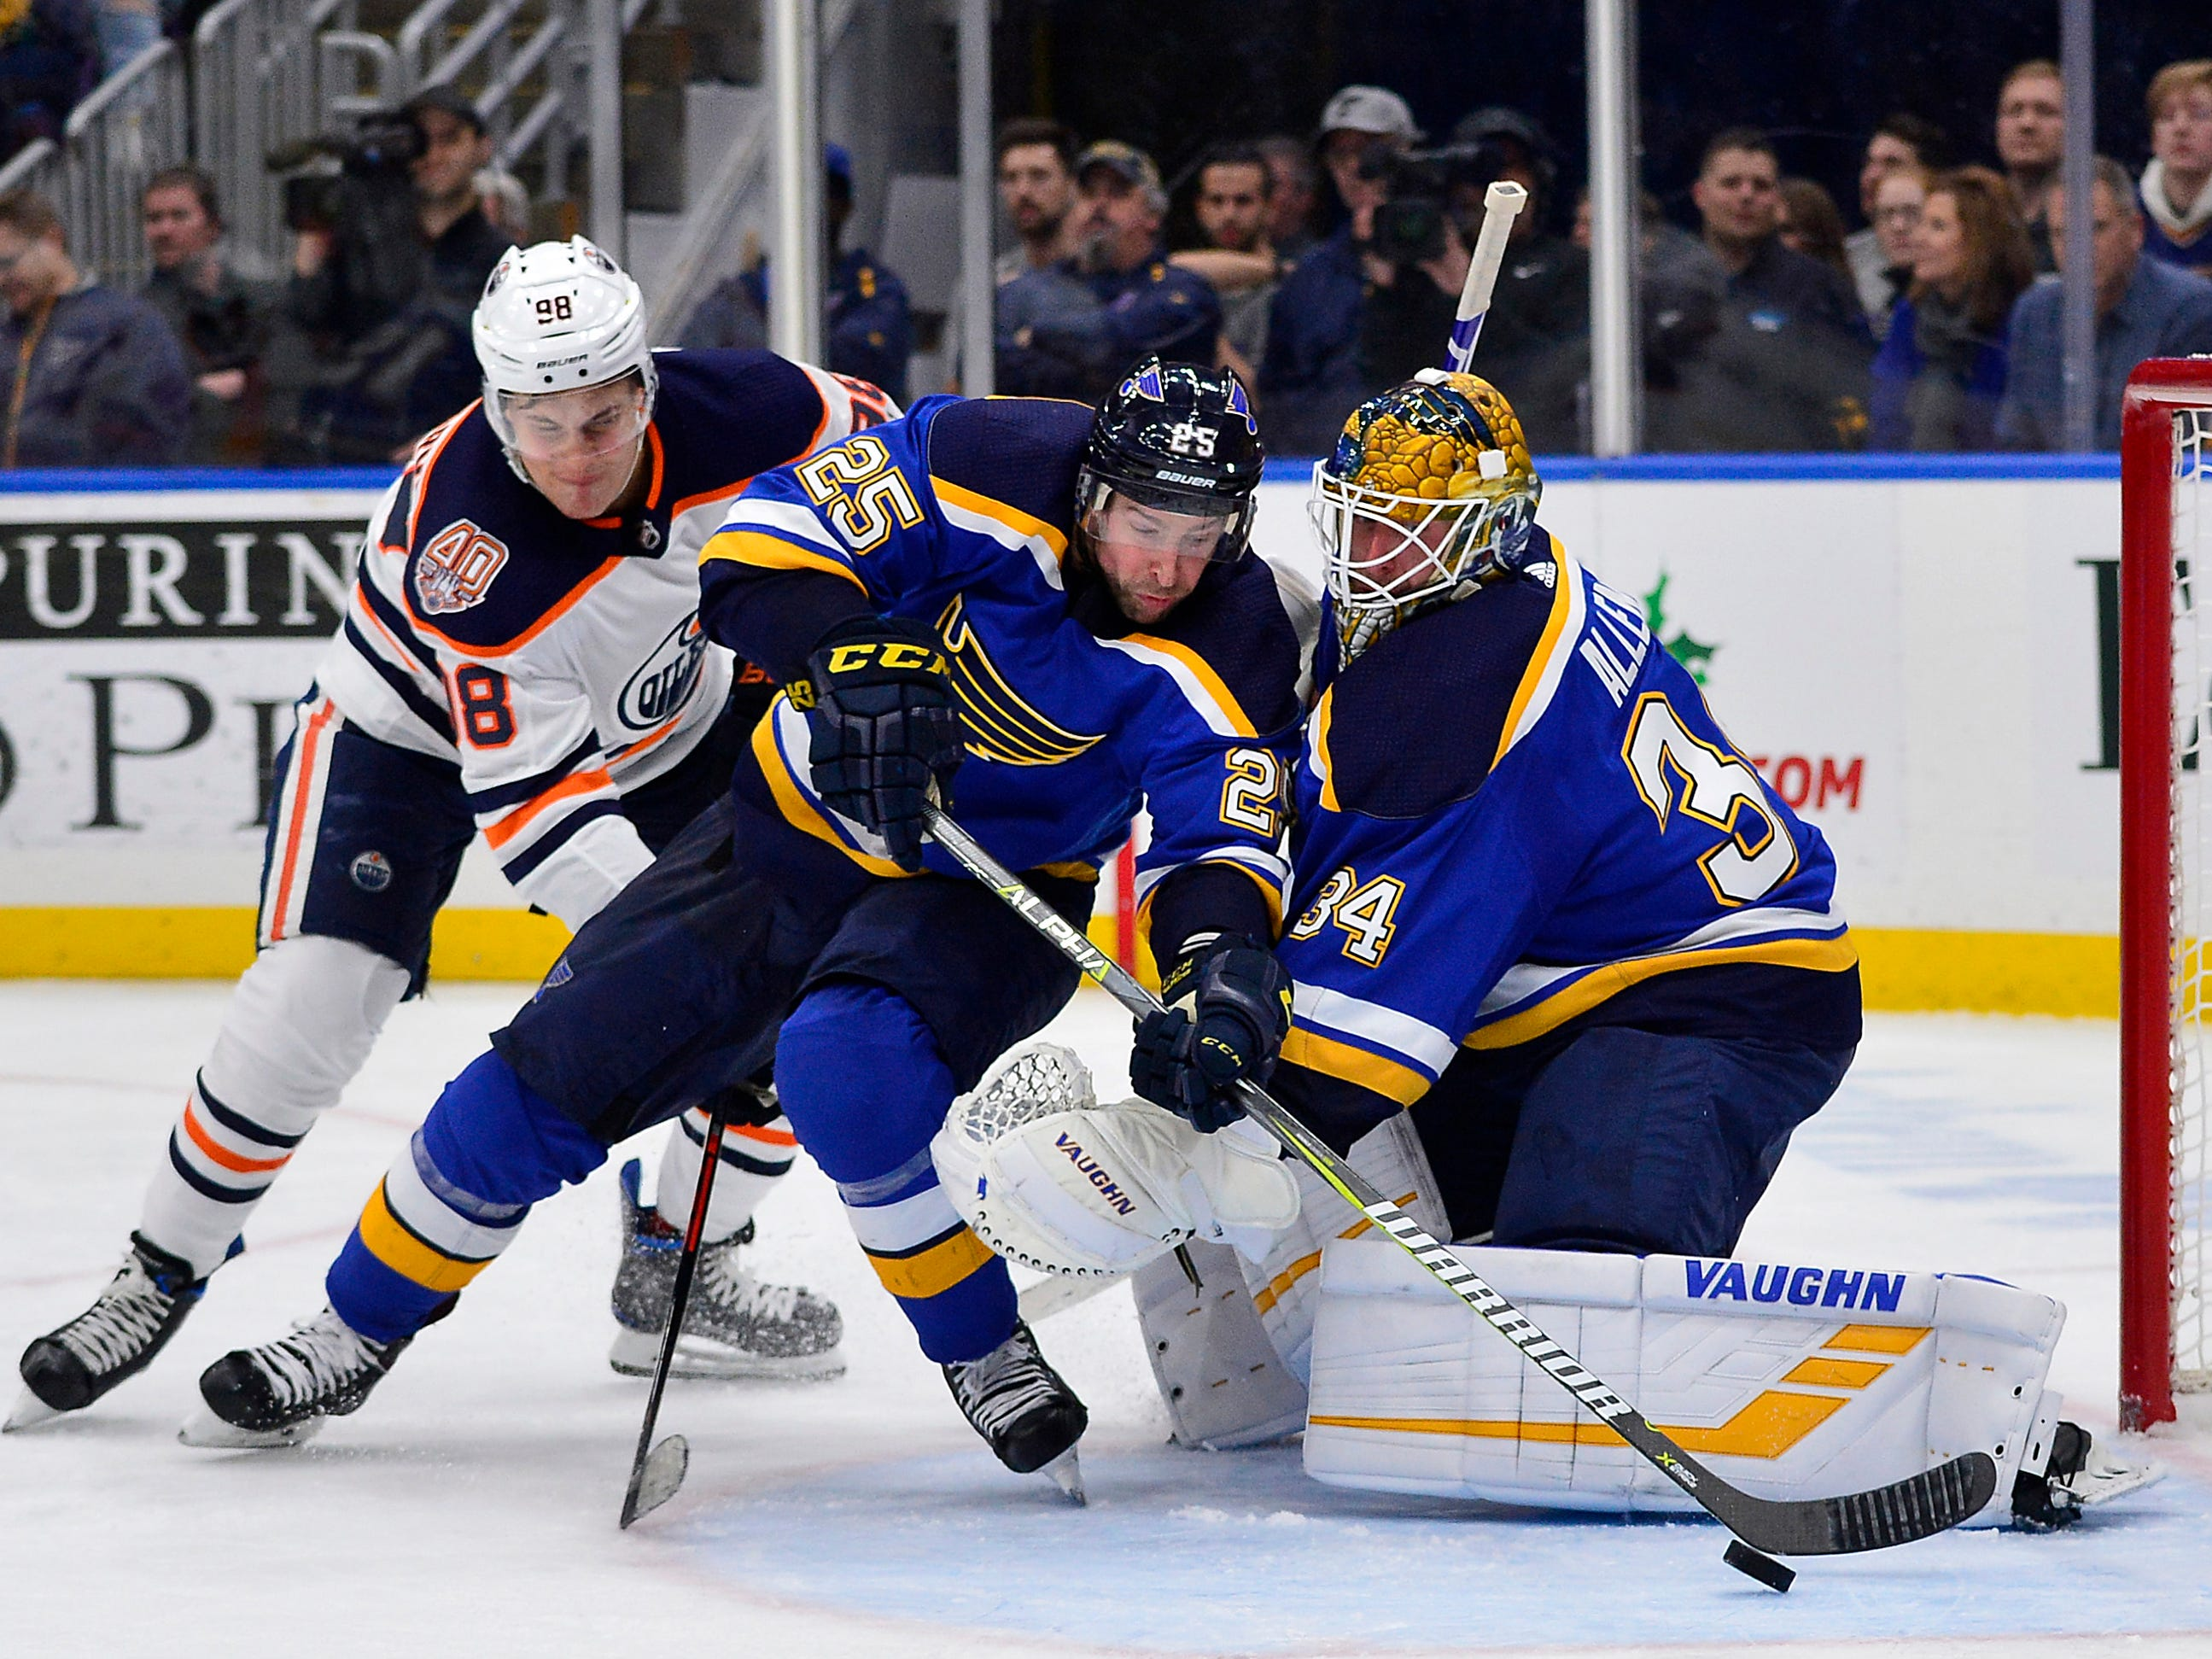 Dec. 5: St. Louis Blues defenseman Chris Butler (25) and goaltender Jake Allen (34) defend the net against Edmonton Oilers right wing Jesse Puljujarvi (98) during the third period at Enterprise Center. The Oilers won the game, 3-2.